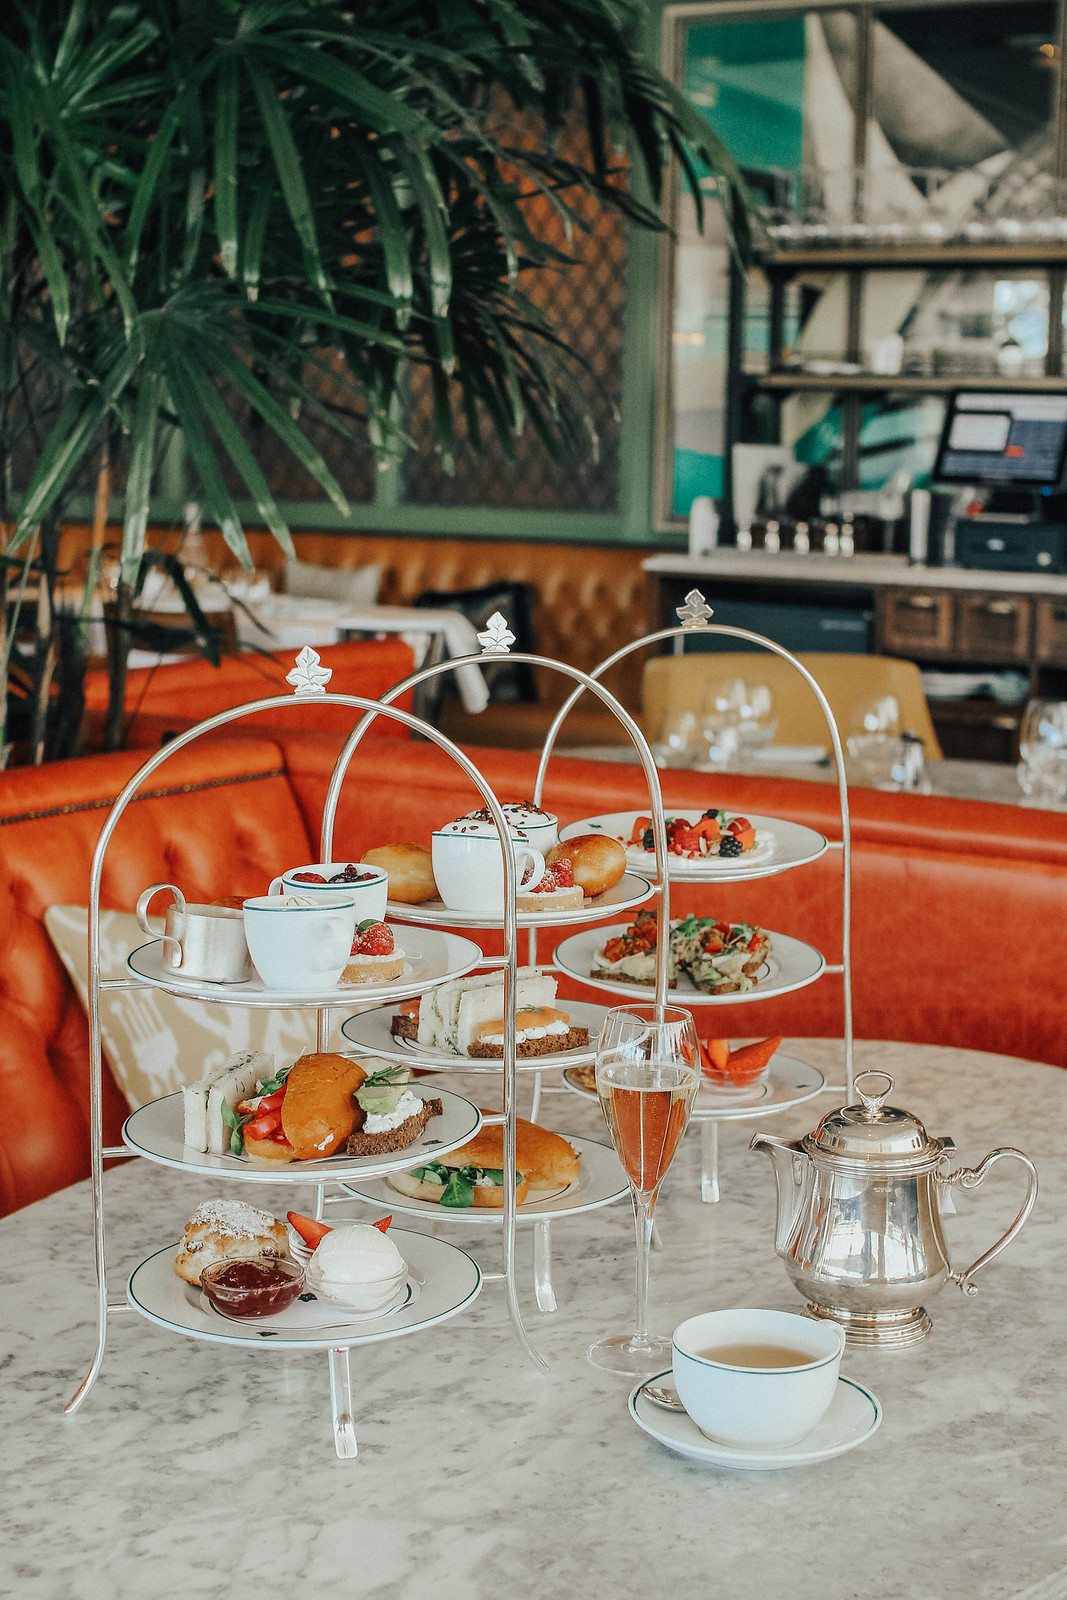 The Ivy Afternoon Tea Lifestyle Blogger Review Edinburgh The Little Things